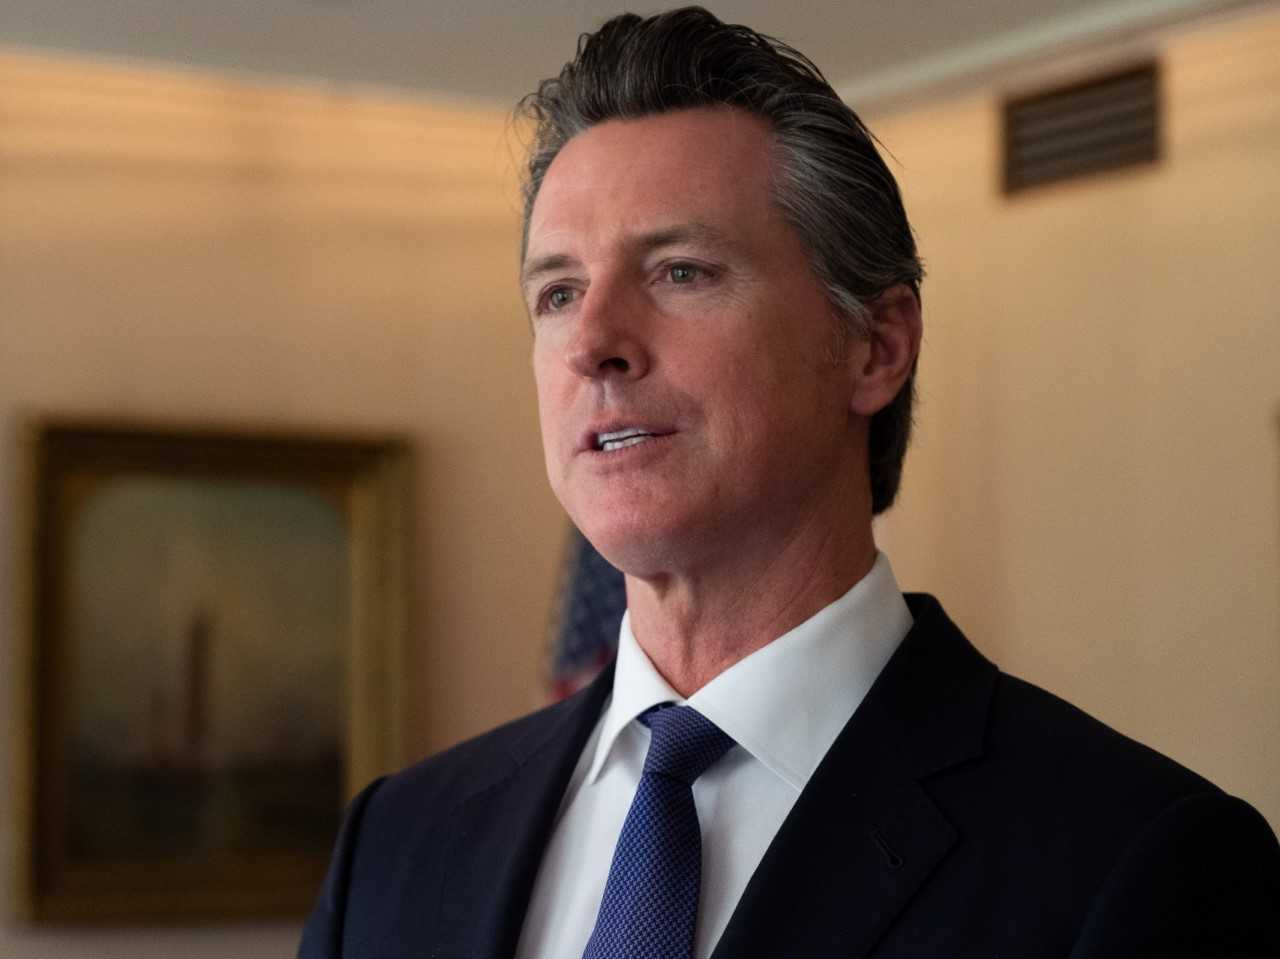 Democratic California Gov. Gavin Newsom in April 2019 / Capital Public Radio